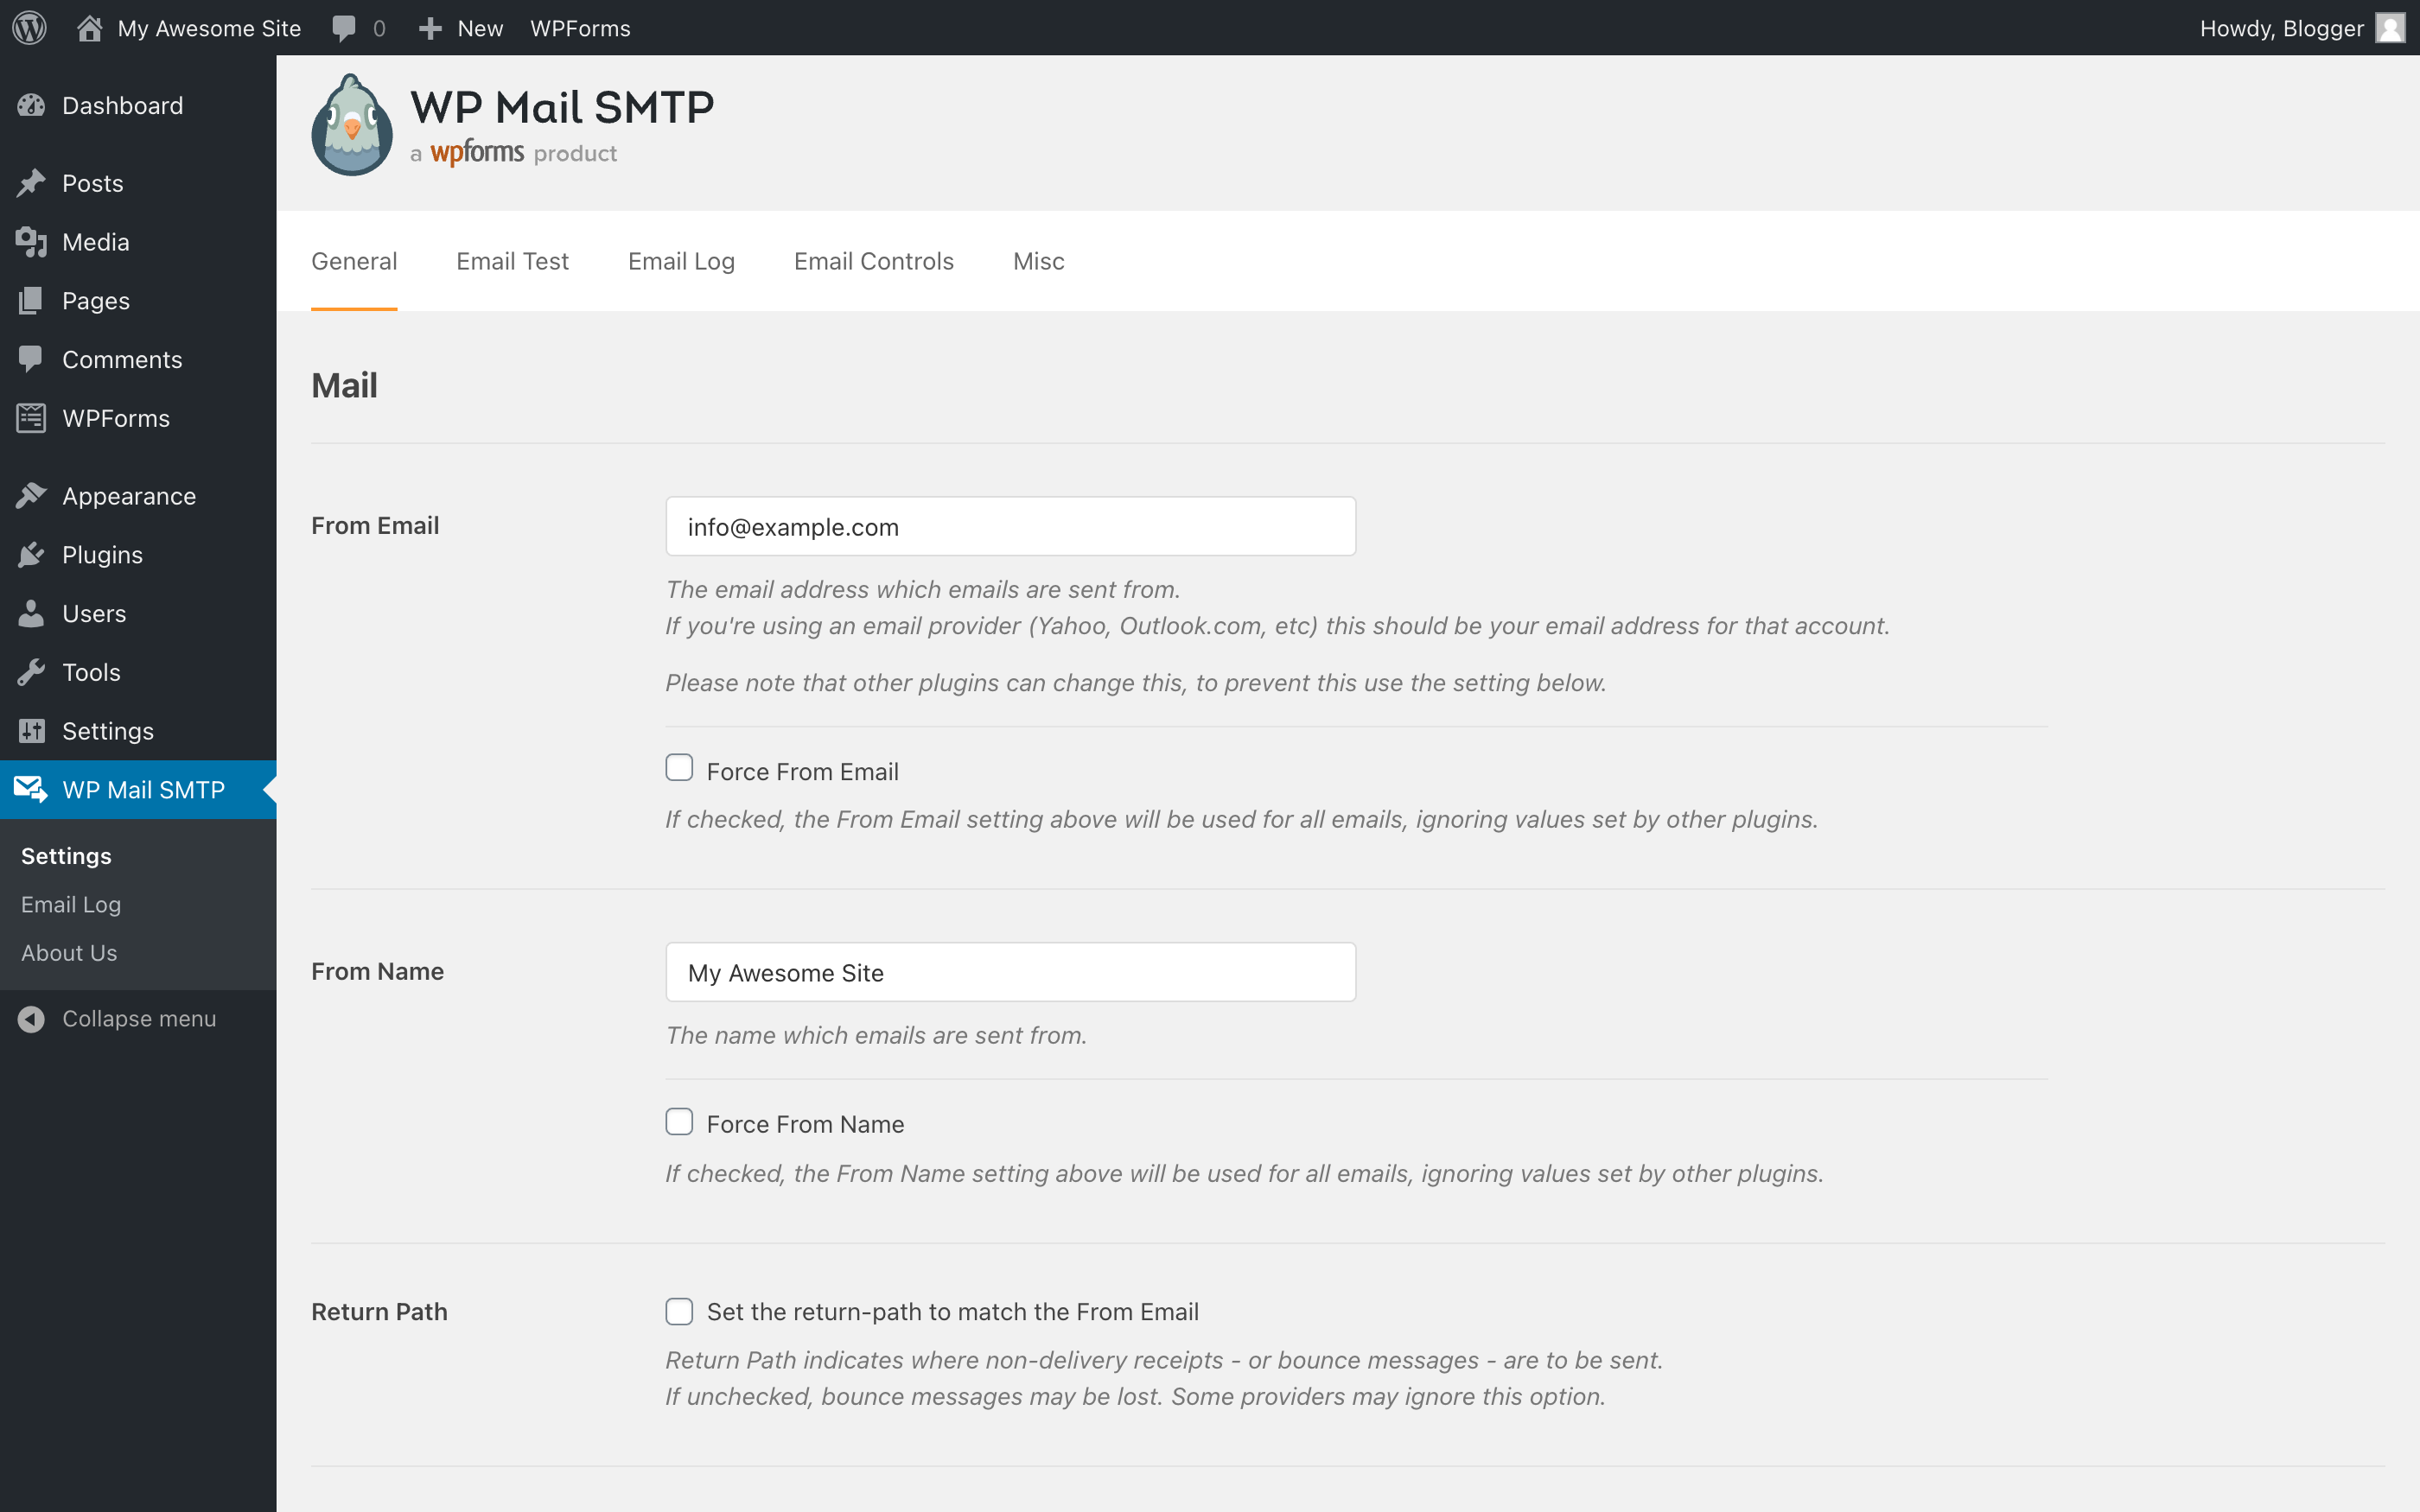 WP Mail SMTP Settings page